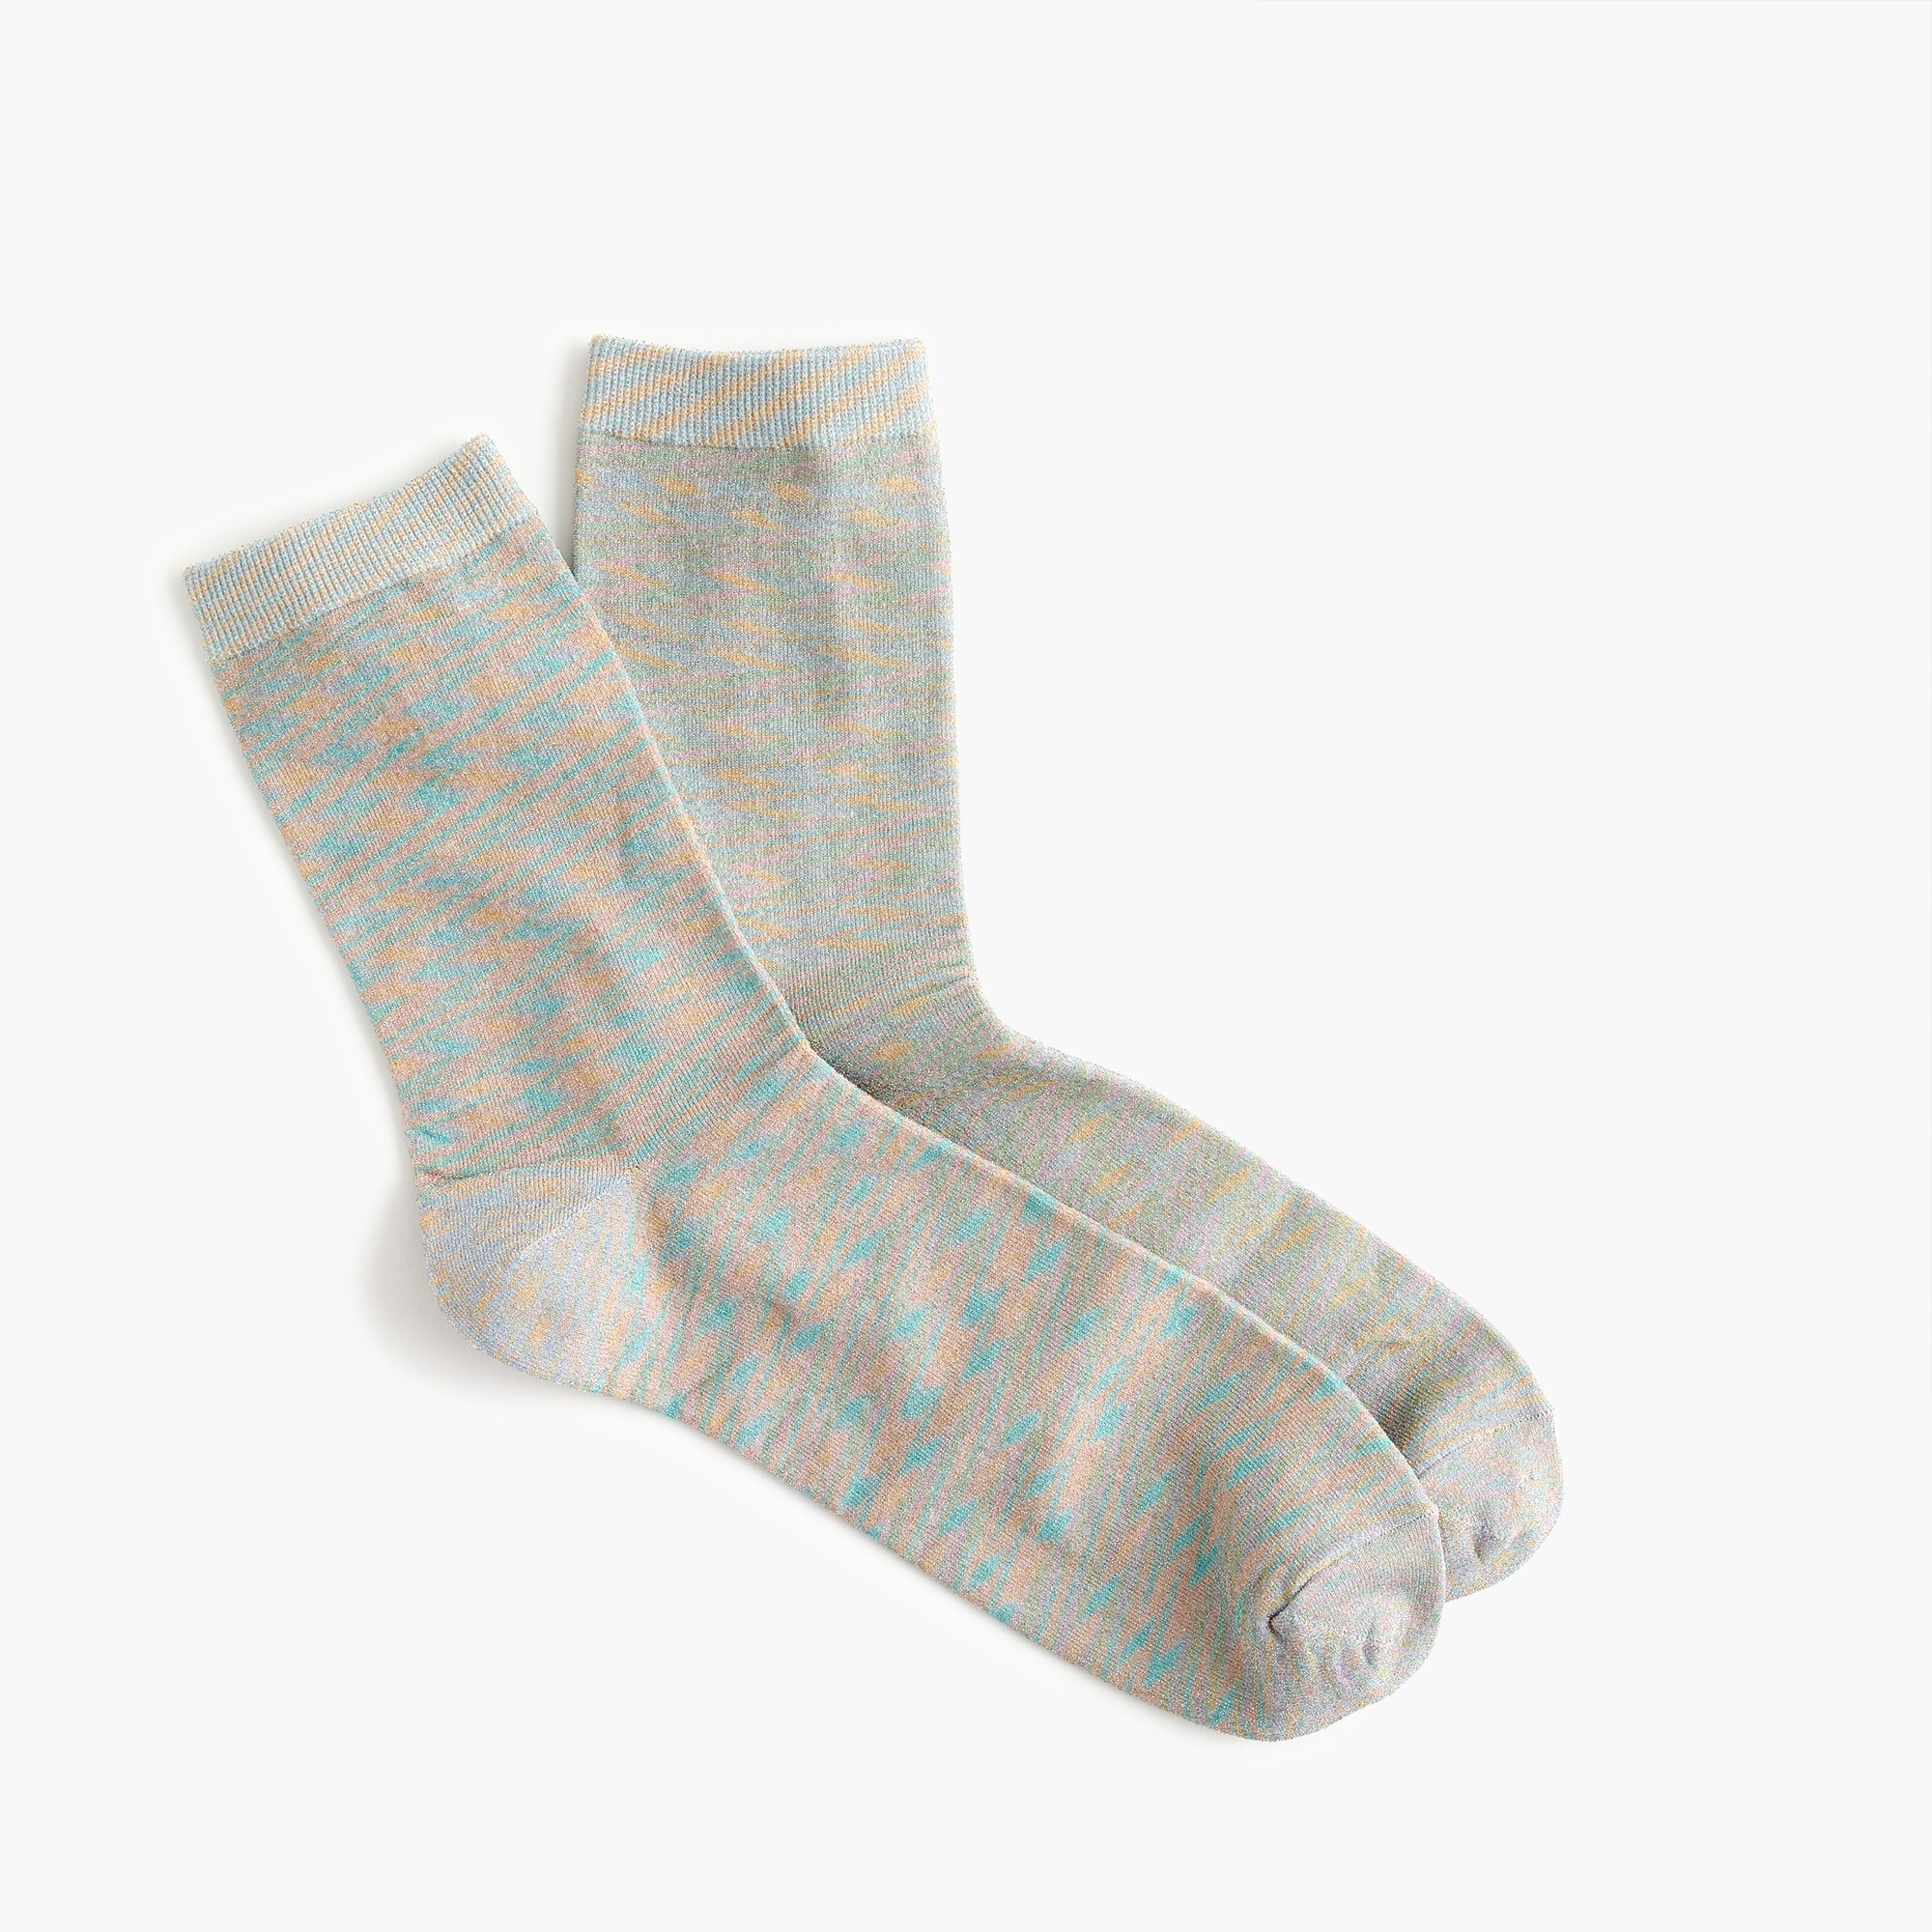 women's space dye lurex bootie socks - women's socks